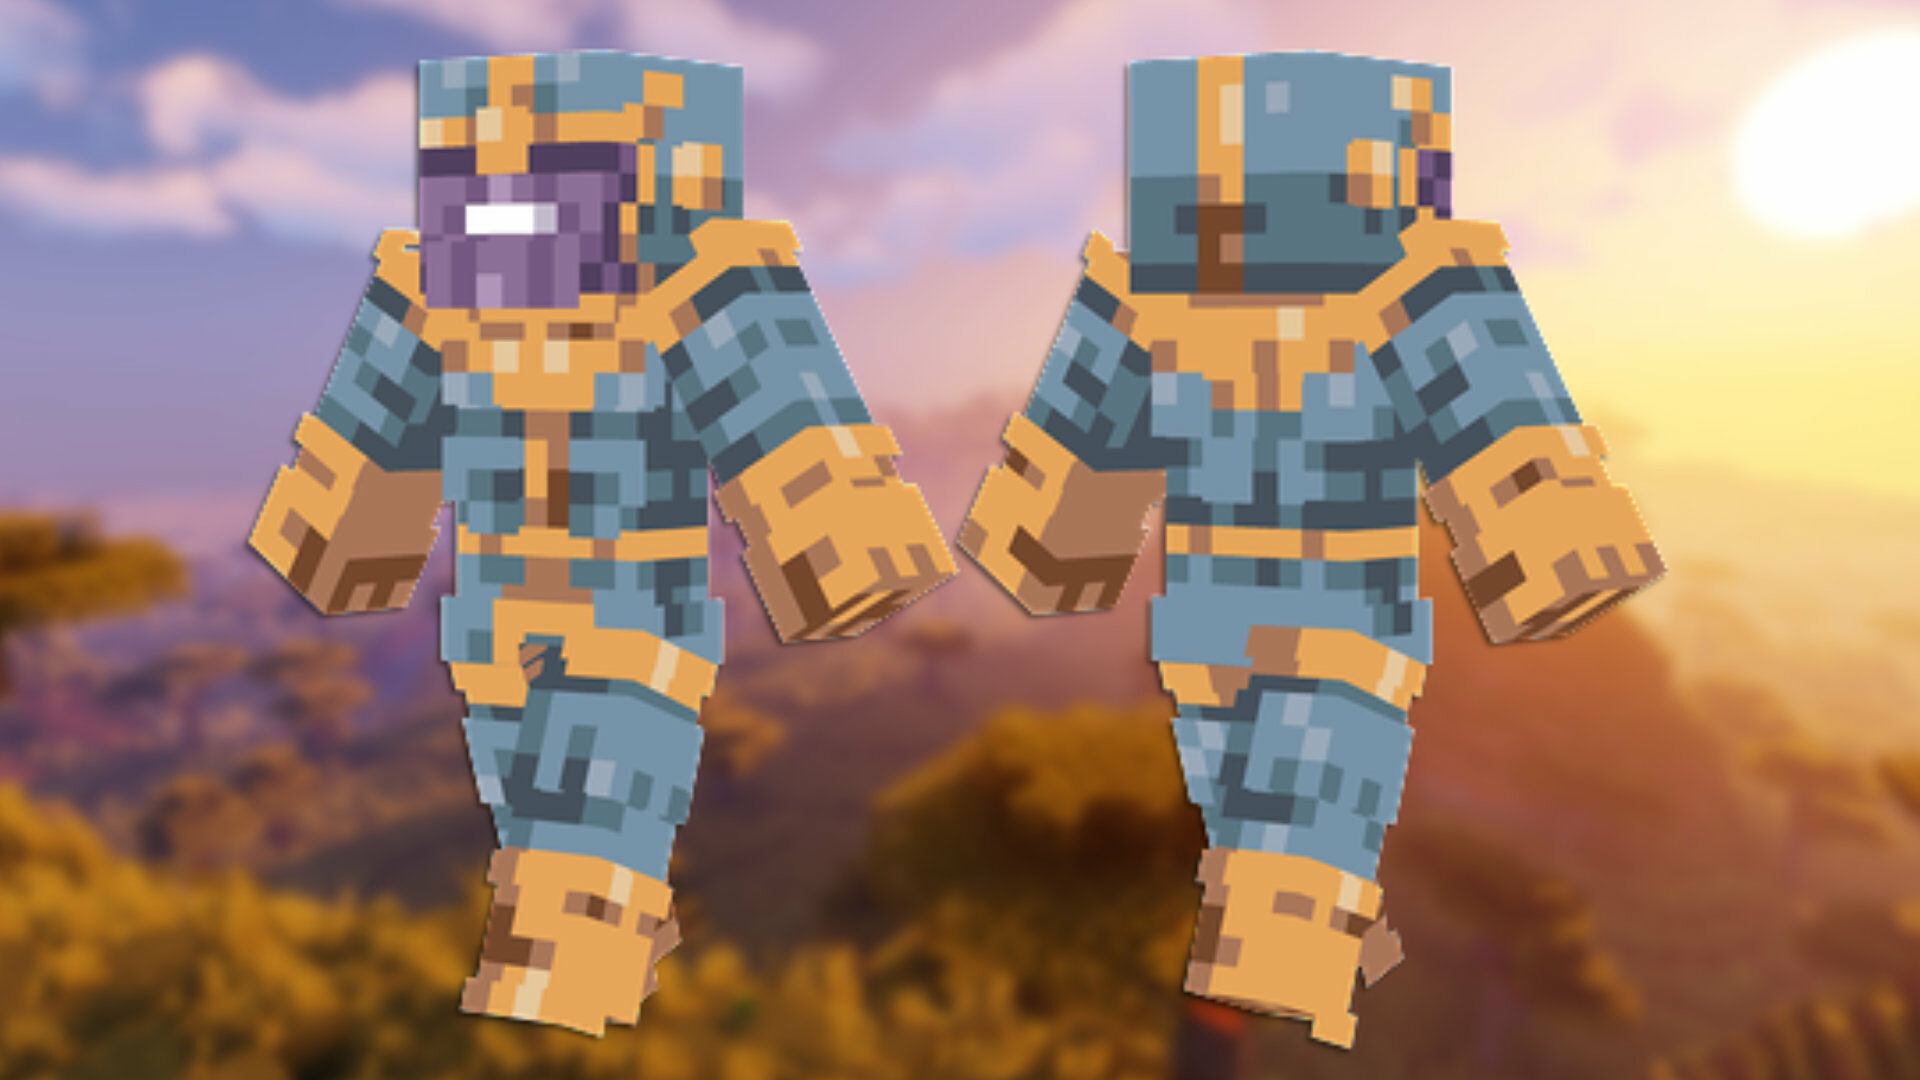 A front and back view of the Gordon Freeman Minecraft skin.